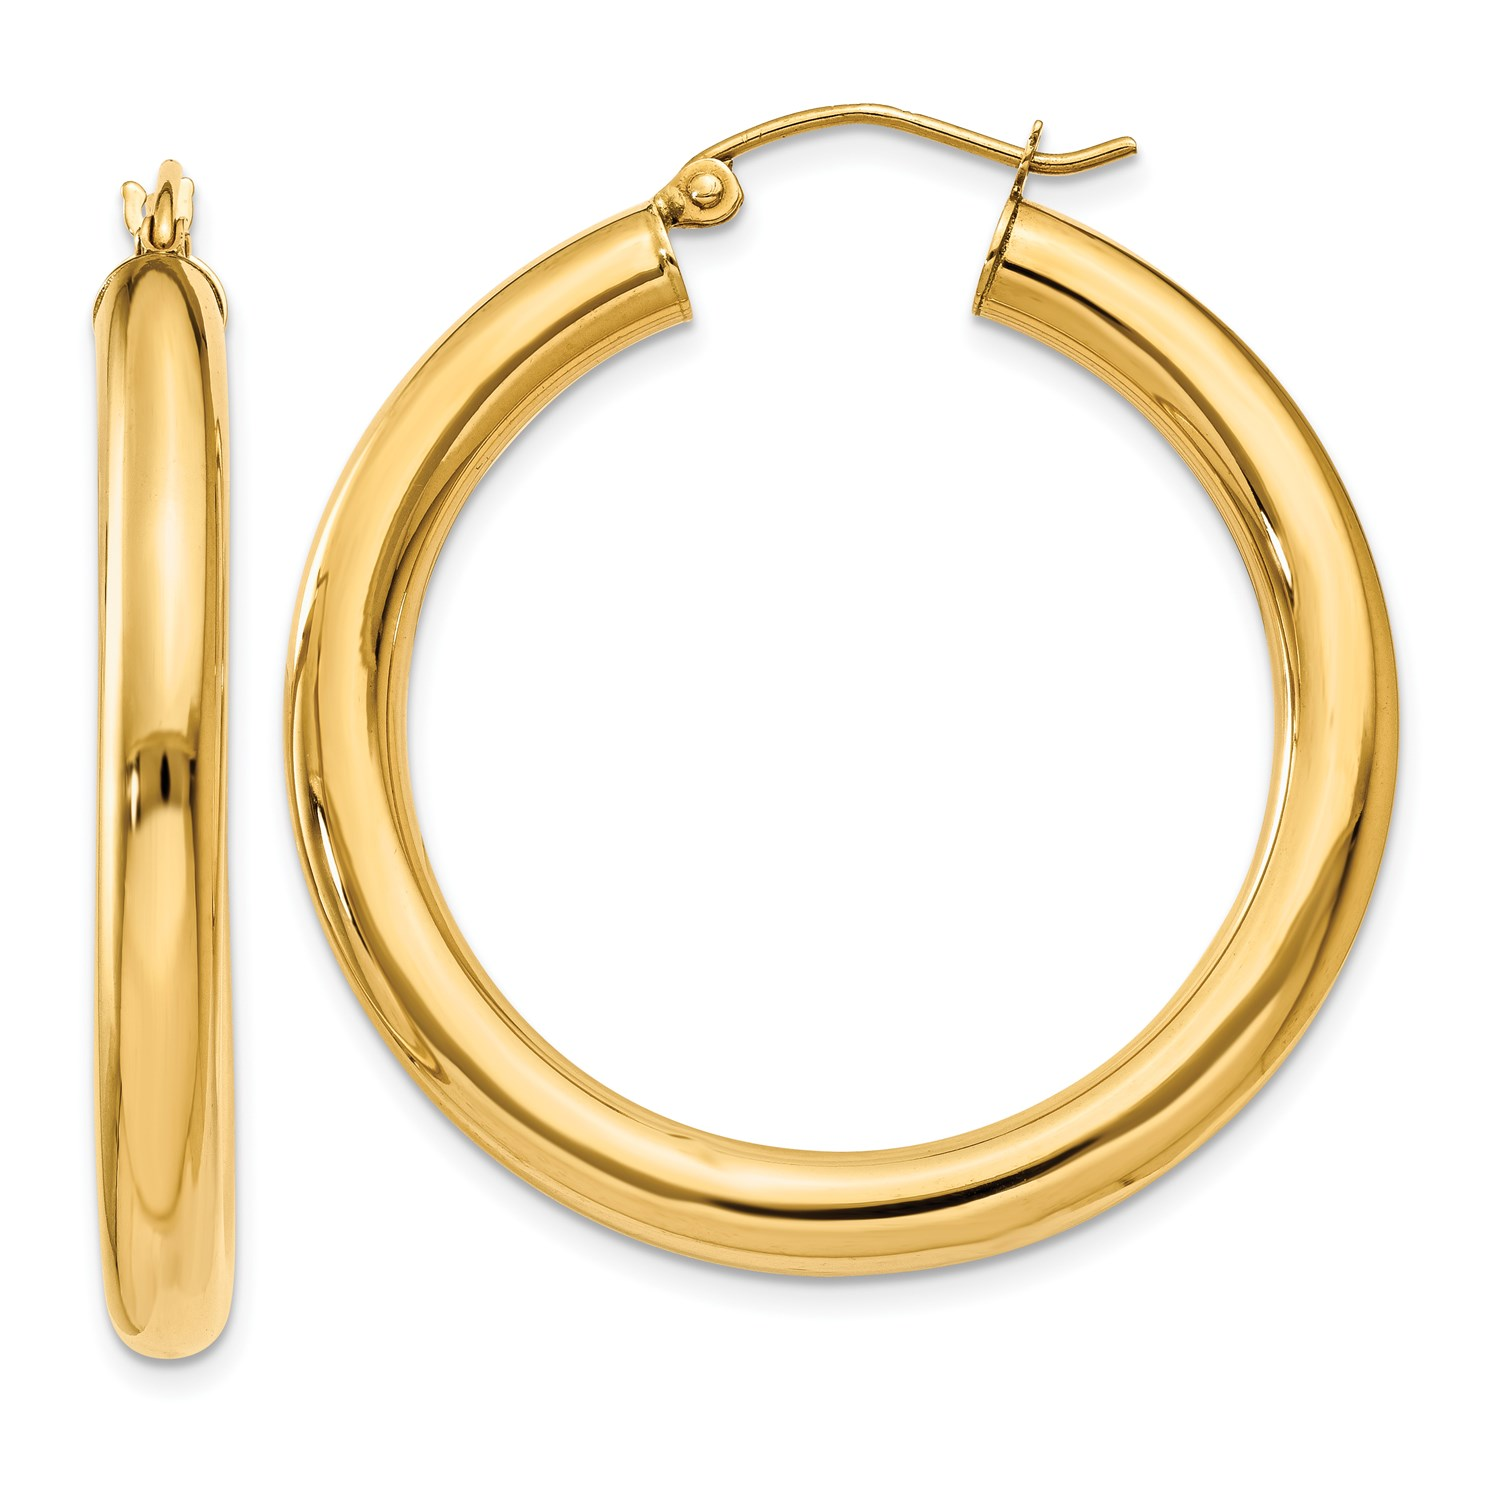 10k Yellow gold Polished 4mm x 35mm Tube Hoop Earrings